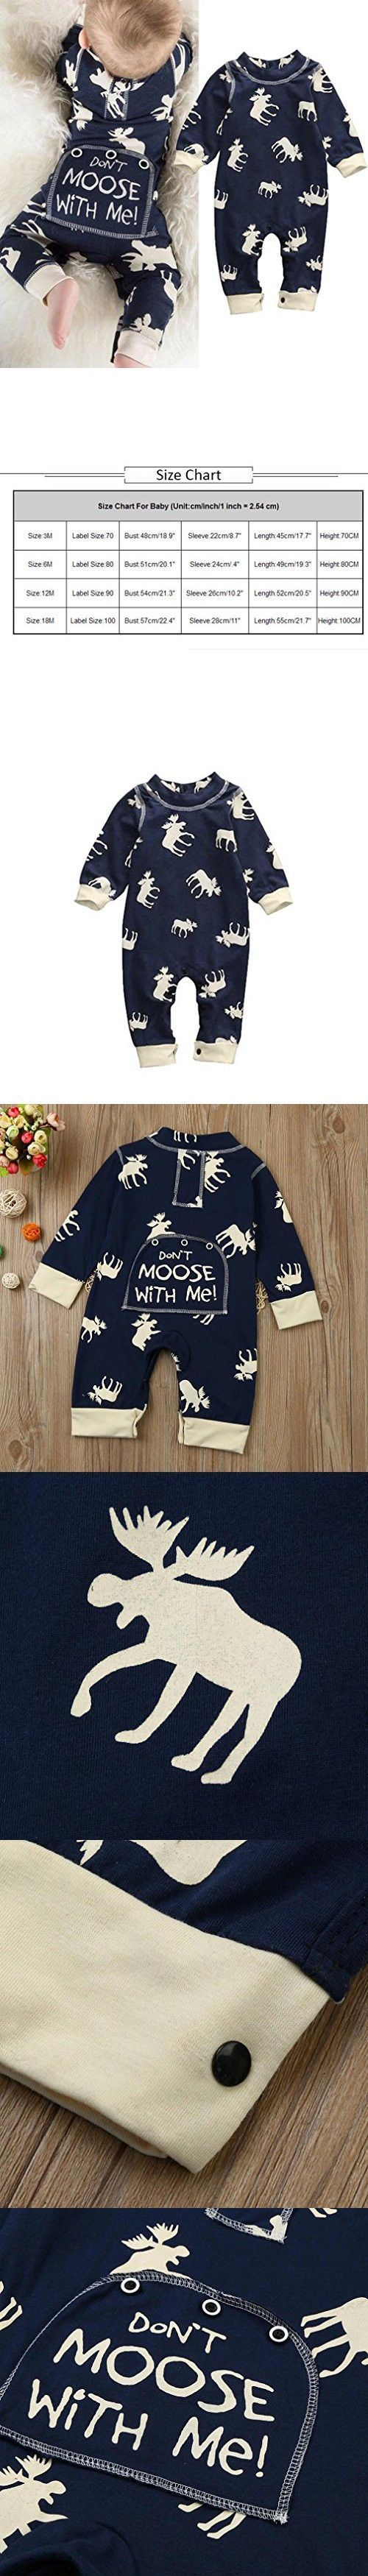 Romper ,OUBAO Toddler Infant Baby Boy Girl Long Sleeve Deer Romper Outfits Set Jumpsuit Bodysuit Clothes (12-18 months, Navy)  https://presentbaby.com